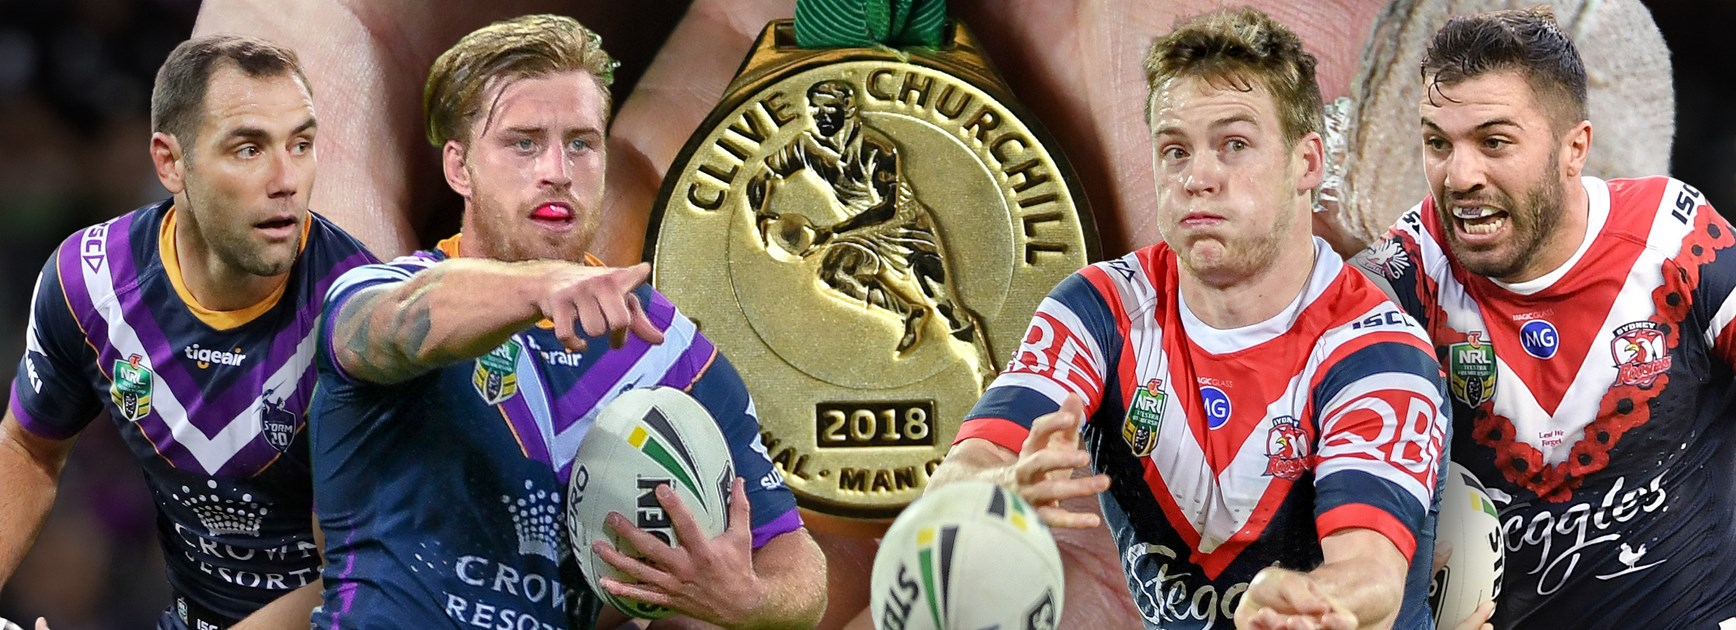 The Clive Churchill Medal